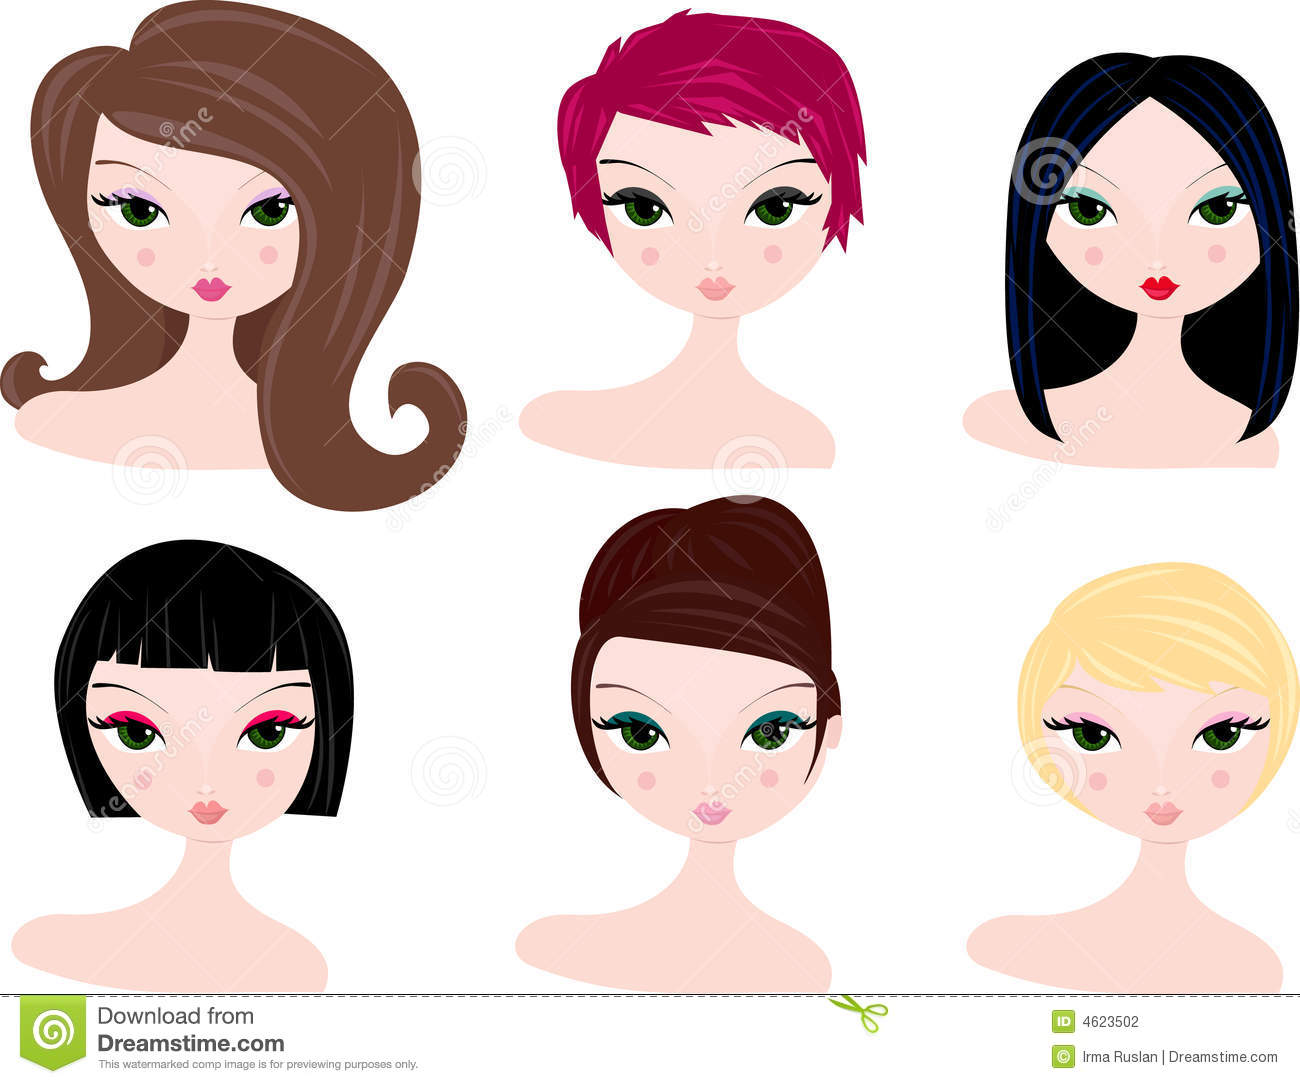 Hair style clipart photo picture transparent download Collection of 14 free Haircut clipart little girl hairstyle sales ... picture transparent download